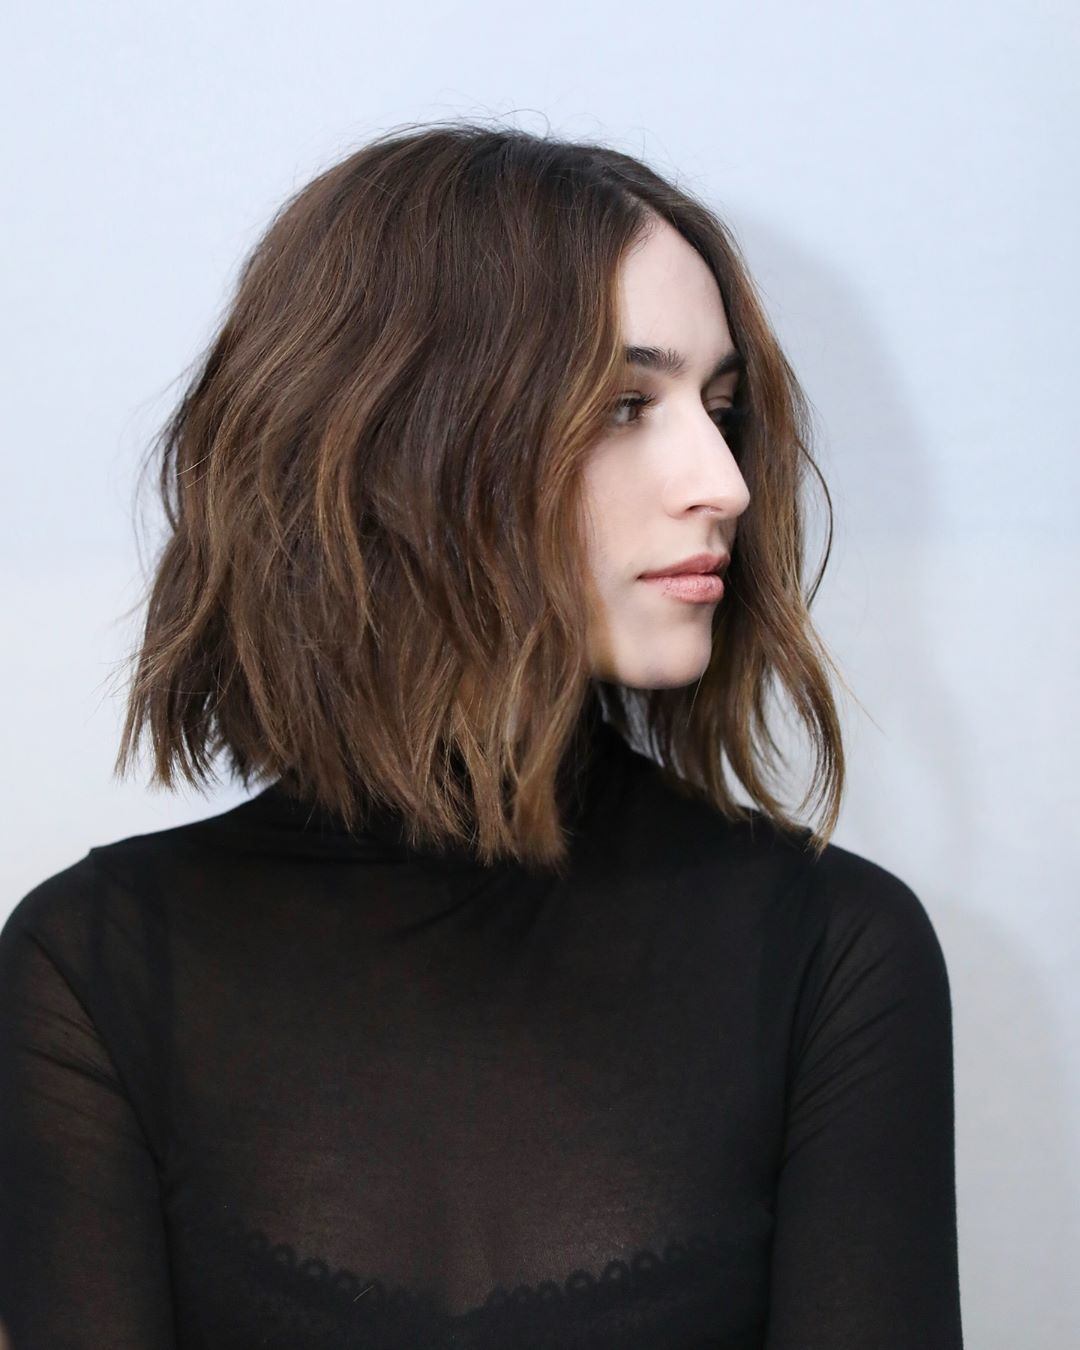 16 Haircuts That Are Going to Be So Popular in 201